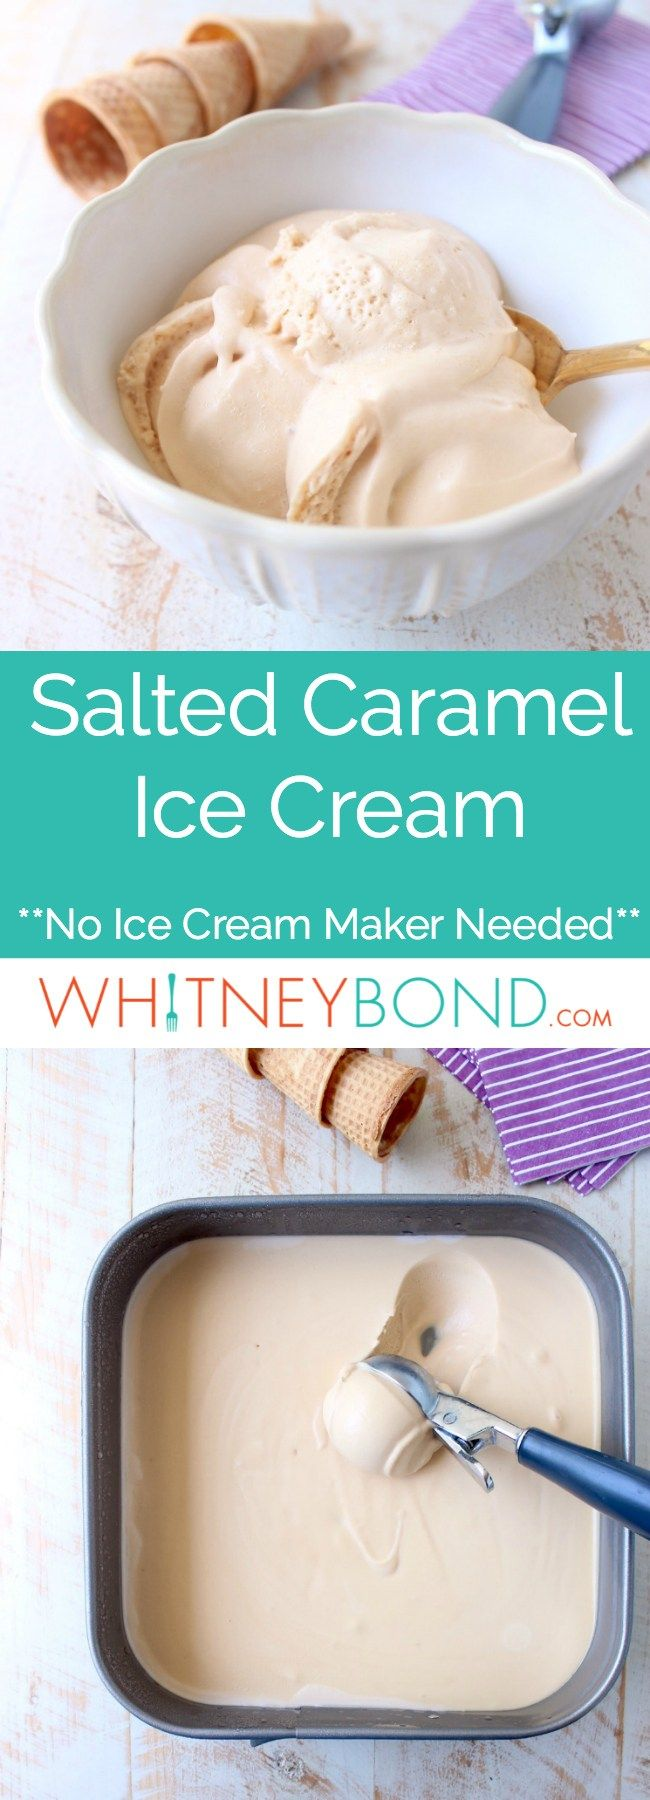 This No Churn Salted Caramel Ice Cream Recipe is made without an ice cream maker, making it an easy homemade ice cream recipe that is totally delicious! Served in a @worldmarket bowl with a gold wave spoon. #WorldMarketTribe